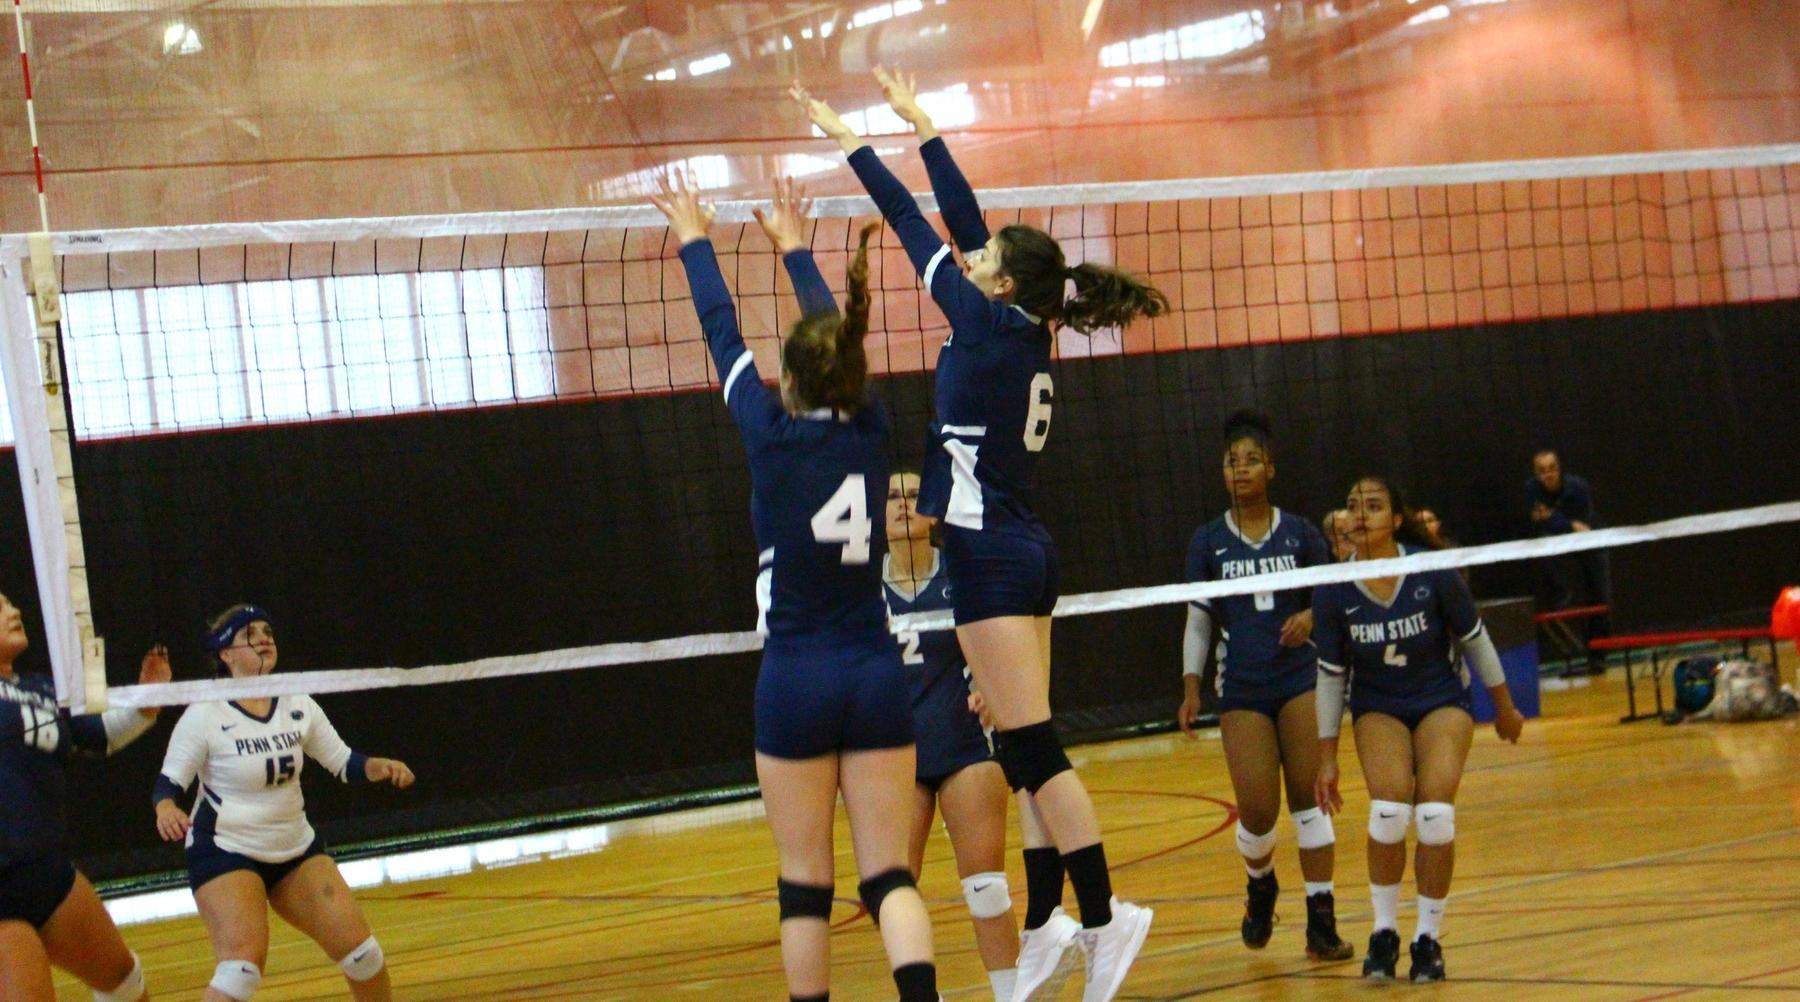 Two TKC volleyball players jump at the net attempting a block.